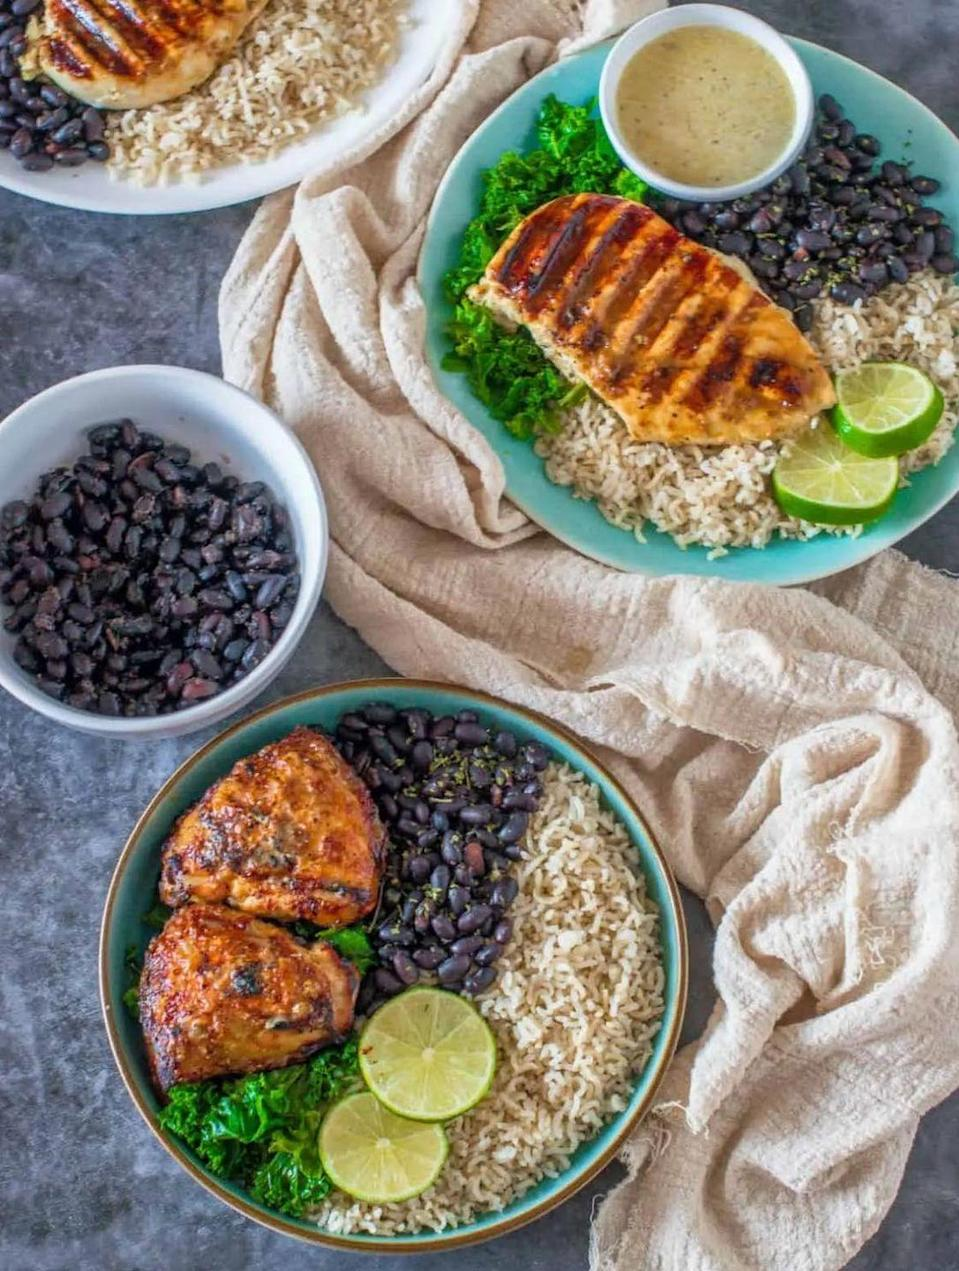 """<p>Serve lean chicken breasts that have been marinated in tangy mojo sauce with stewed black beans and healthy brown rice. <strong><br><br></strong></p><p><strong>Get the recipe at <a href=""""https://thatgirlcookshealthy.com/cuban-mojo-chicken-recipe/"""" rel=""""nofollow noopener"""" target=""""_blank"""" data-ylk=""""slk:That Girl Cooks Healthy"""" class=""""link rapid-noclick-resp"""">That Girl Cooks Healthy</a>.</strong></p>"""